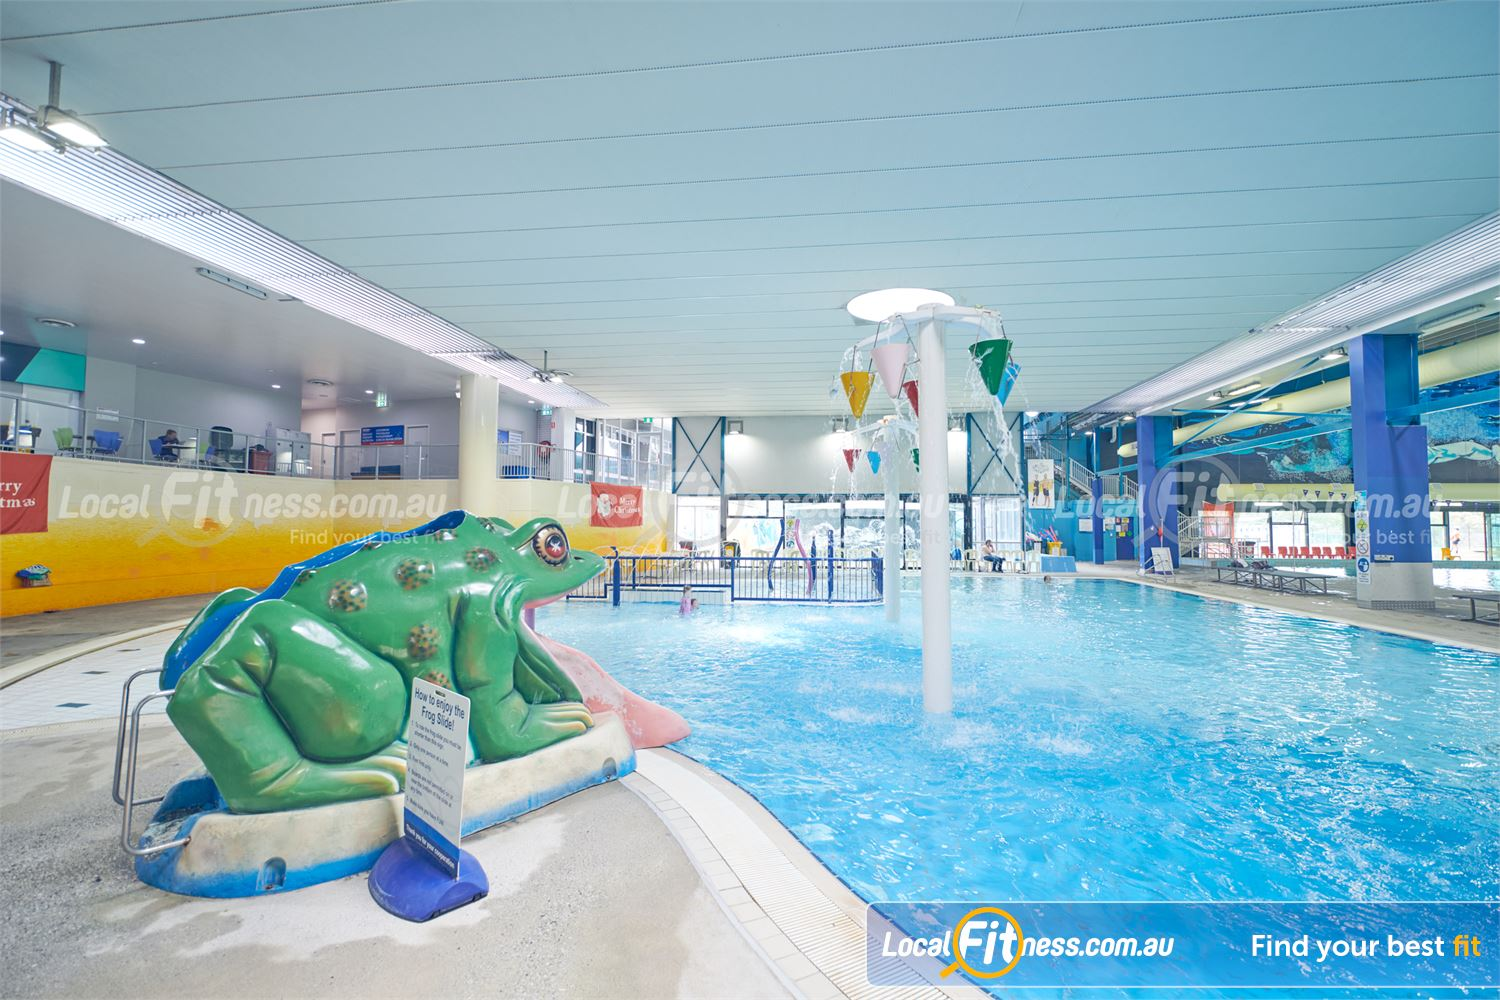 Knox Leisureworks Near Ferntree Gully Our aqua play swimming area for toddlers and your little ones.